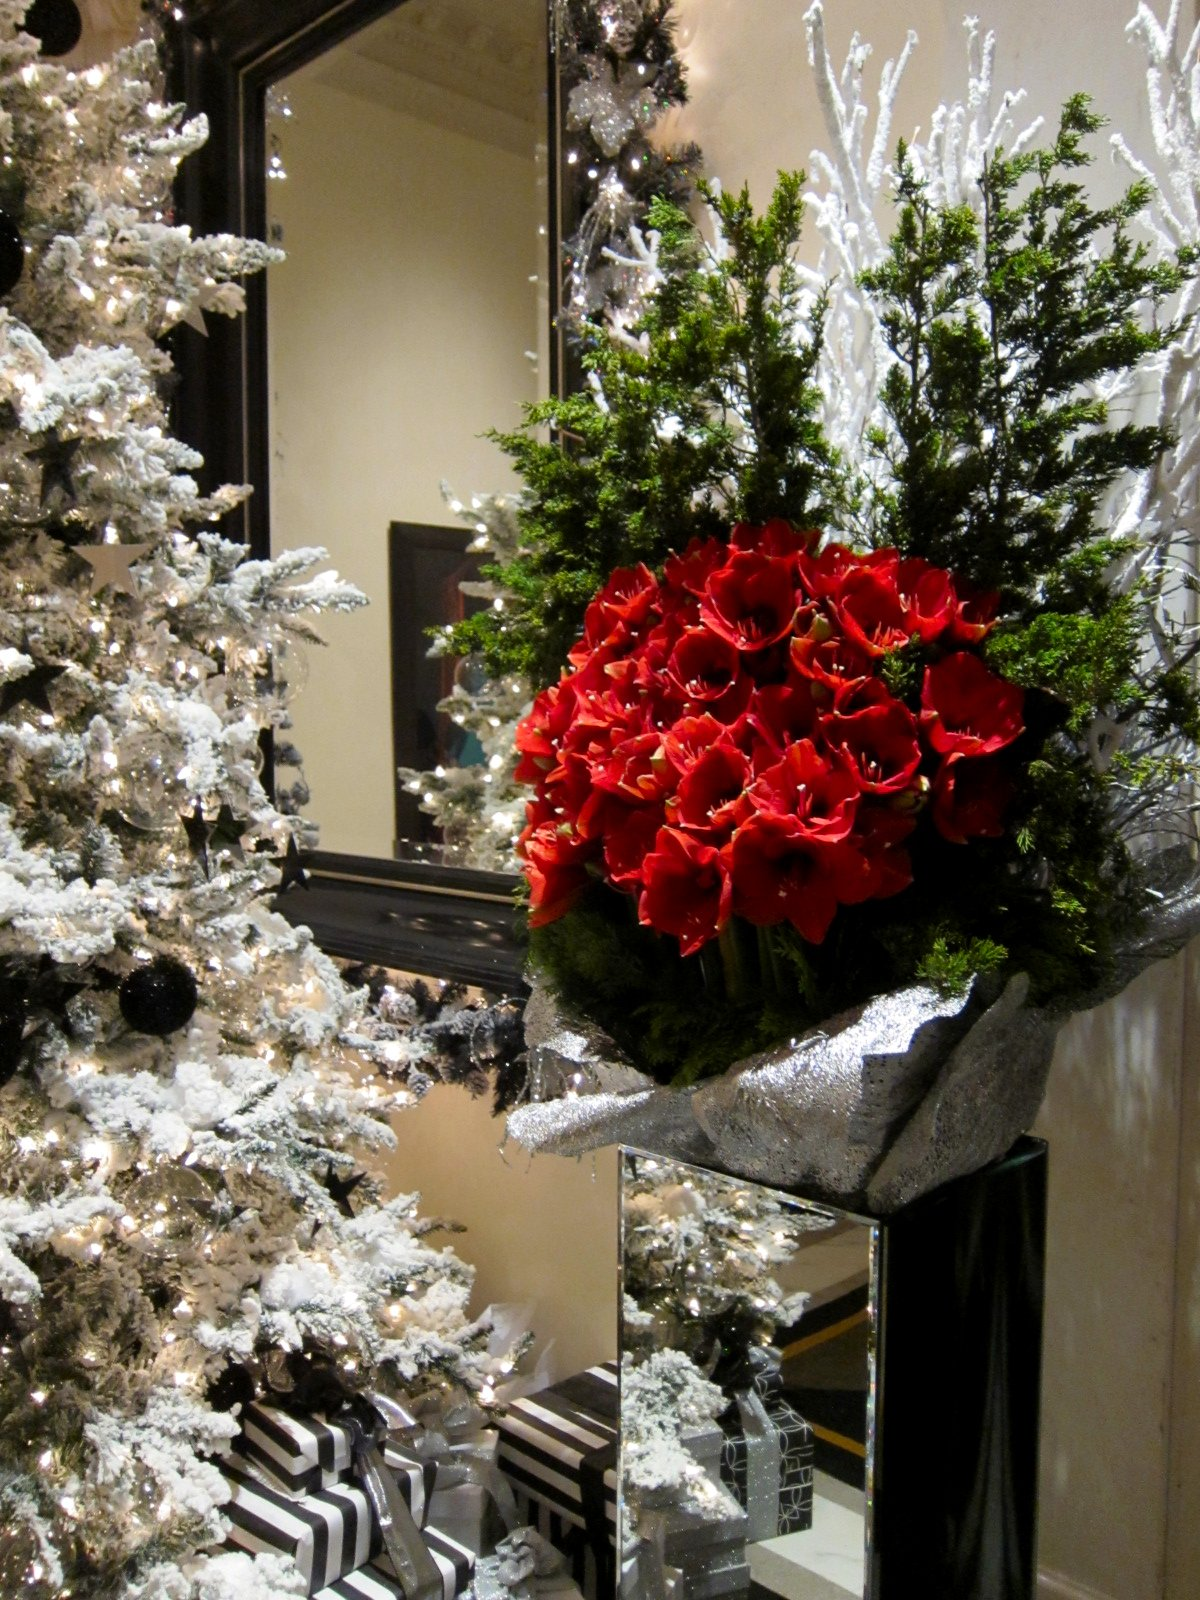 Christmas Decorations In Hotel Lobby : Chronica domus part i welcome to new york